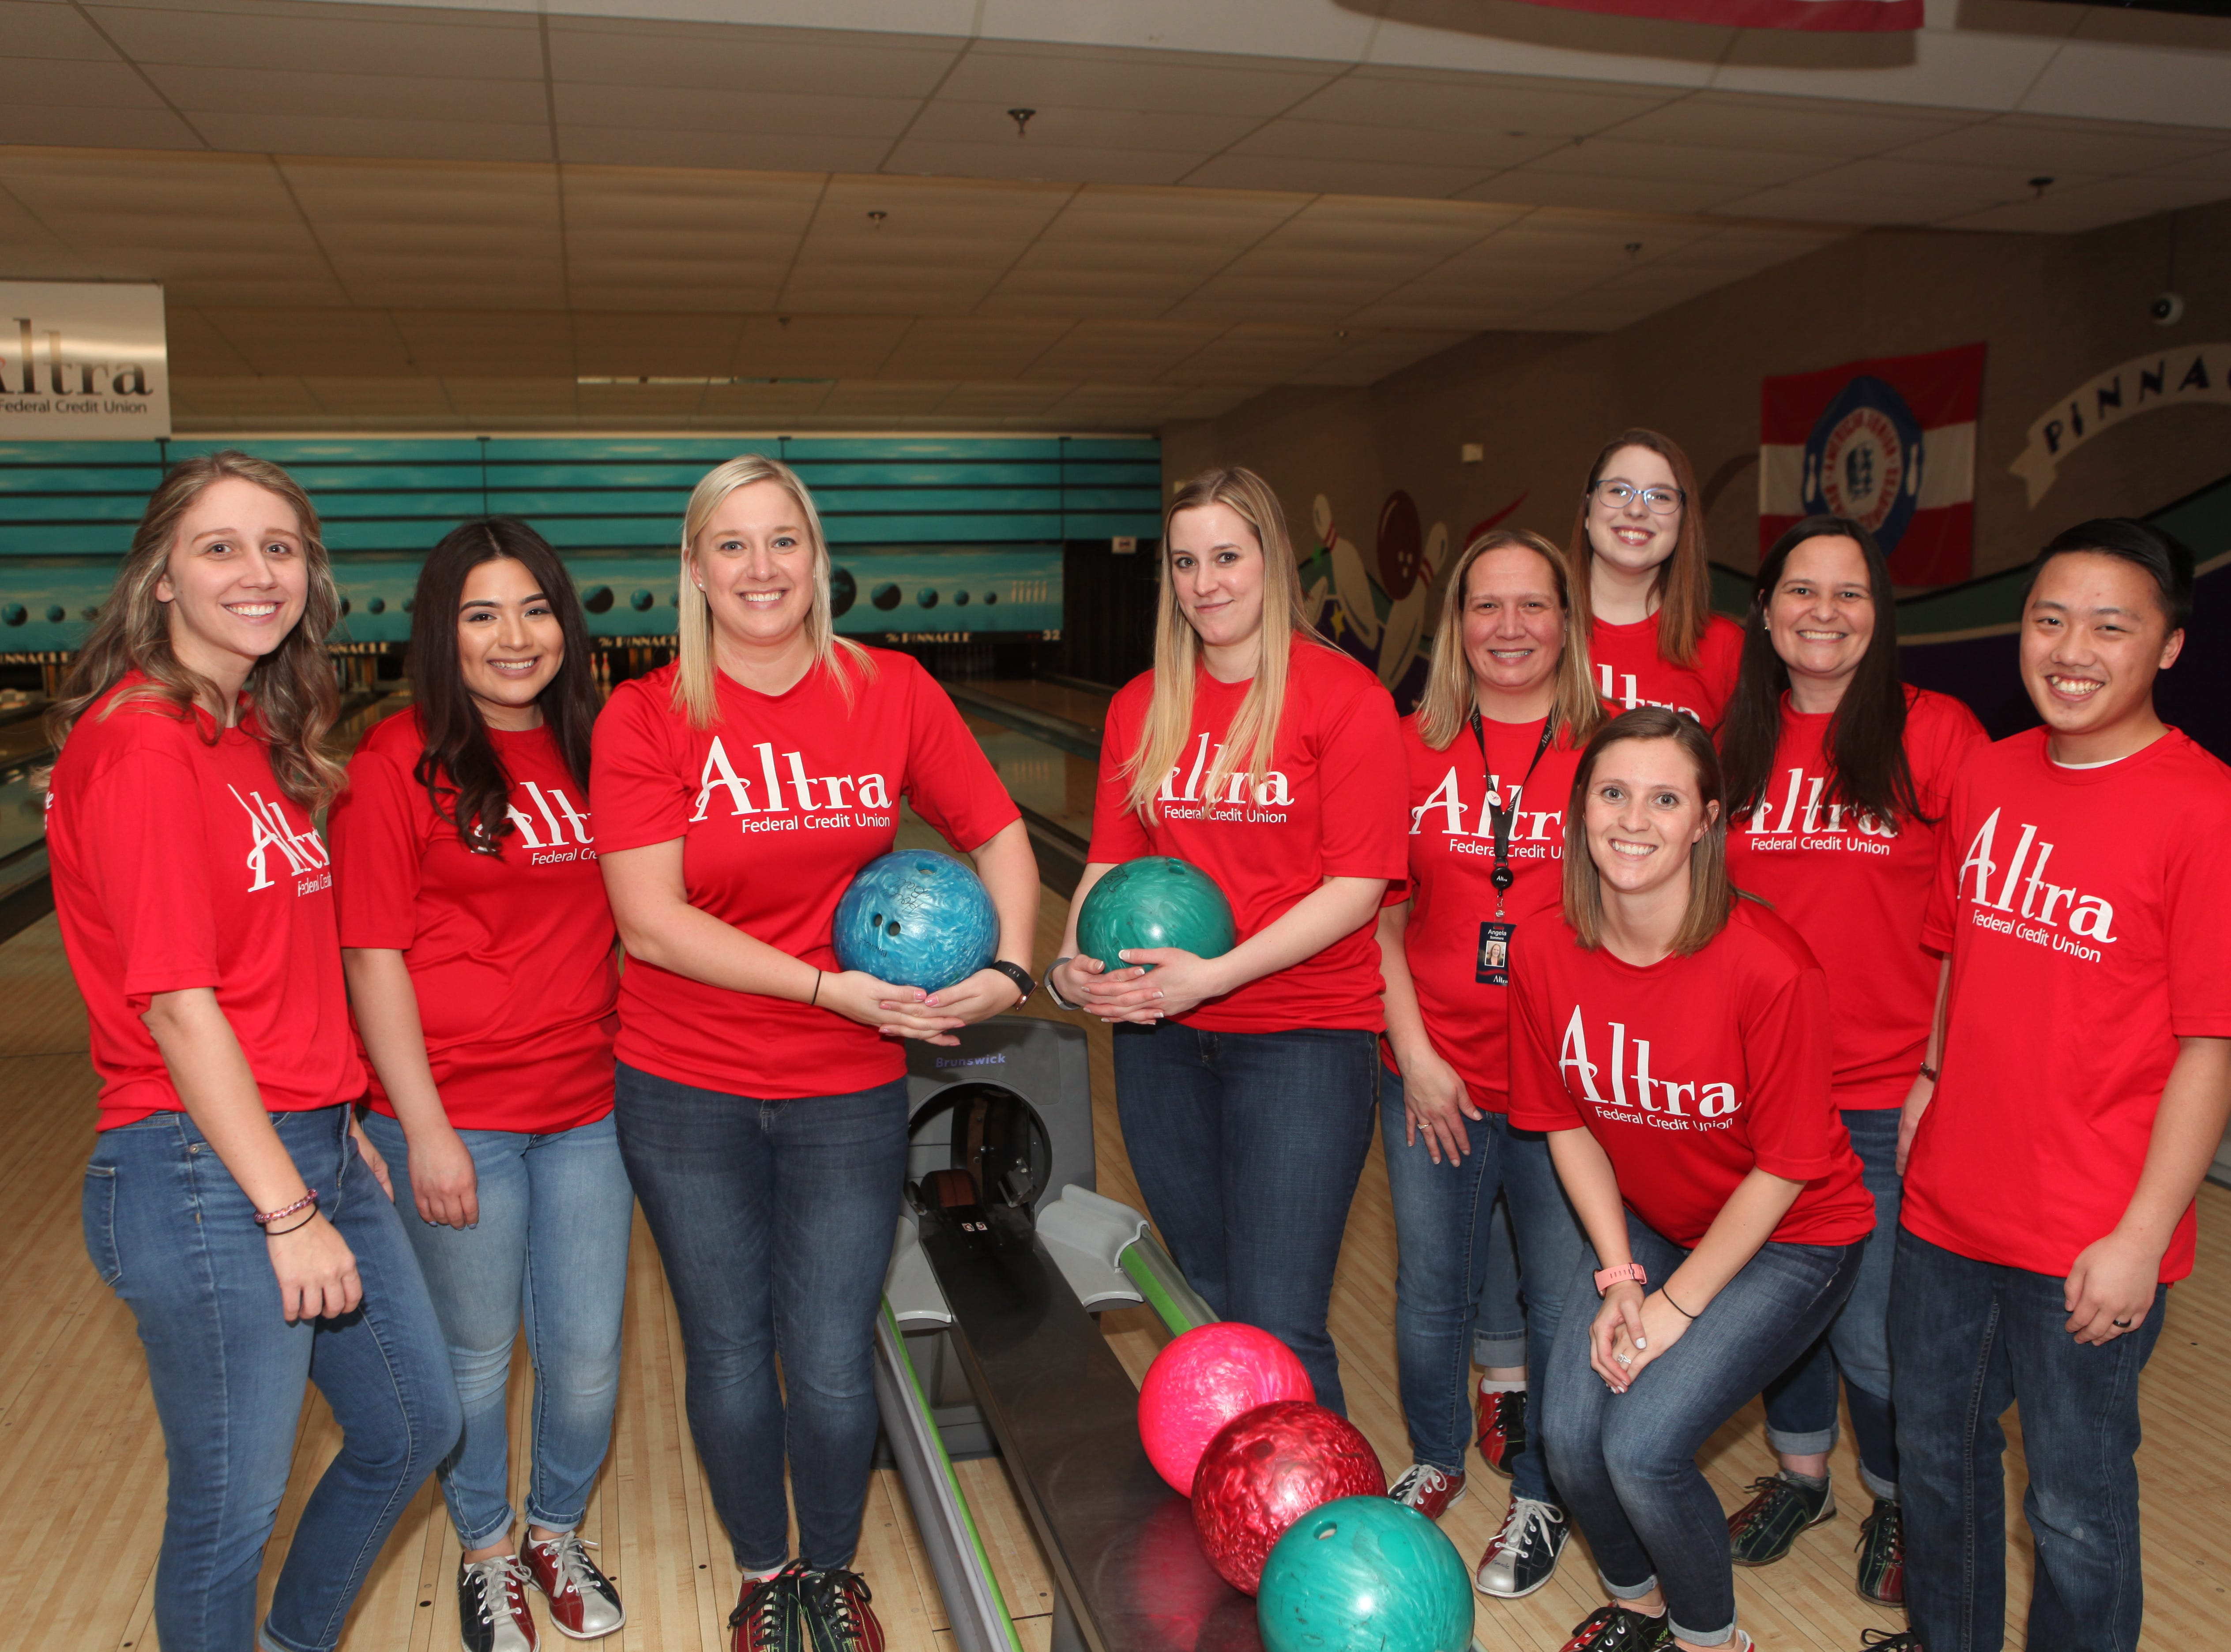 Altra Federal Credit Union team members at the Big Brothers Big Sisters 2019 Bankers Challenge at the Pinnacle Family Entertainment Center on Tuesday, March 12, 2019.